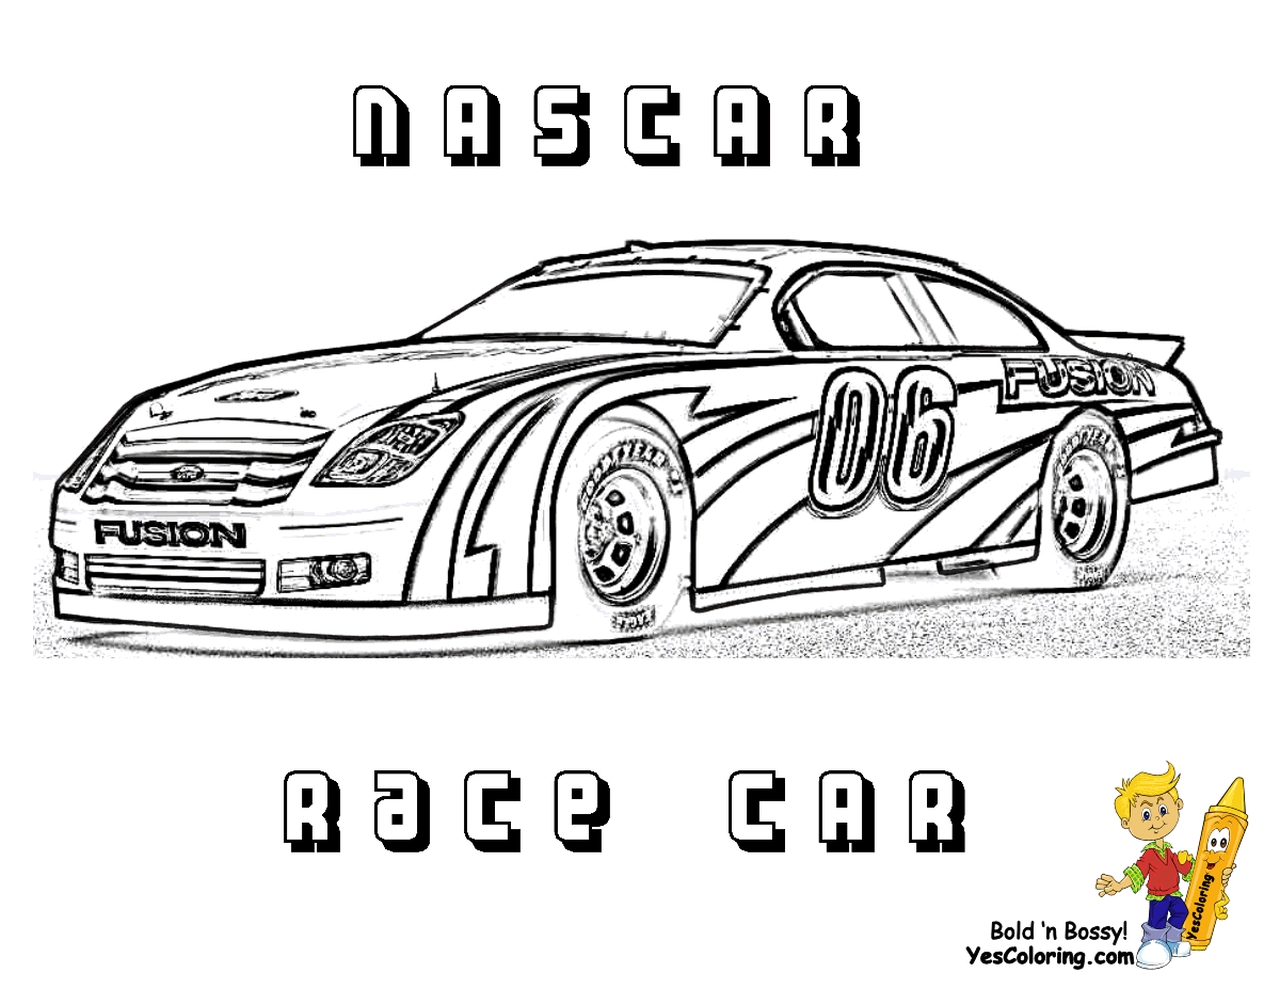 Nascar racing car coloring pages for boys - 36729